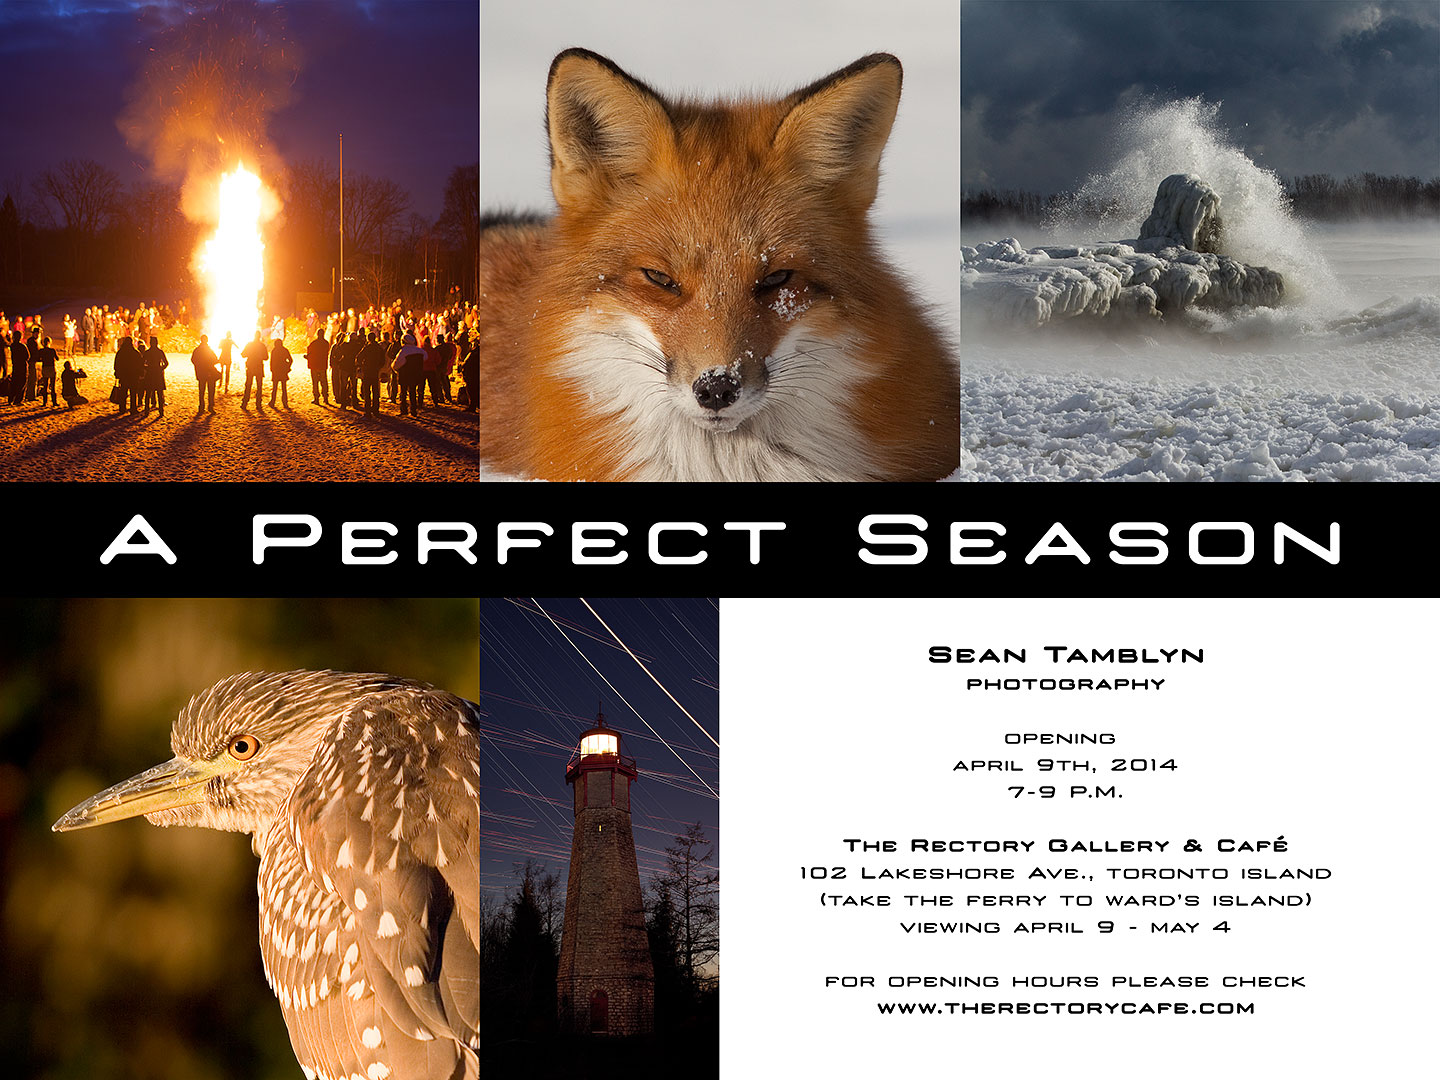 A Perfect Season, Sean Tamblyn Photography, Rectory Gallery & Cafe opening April 9 2014